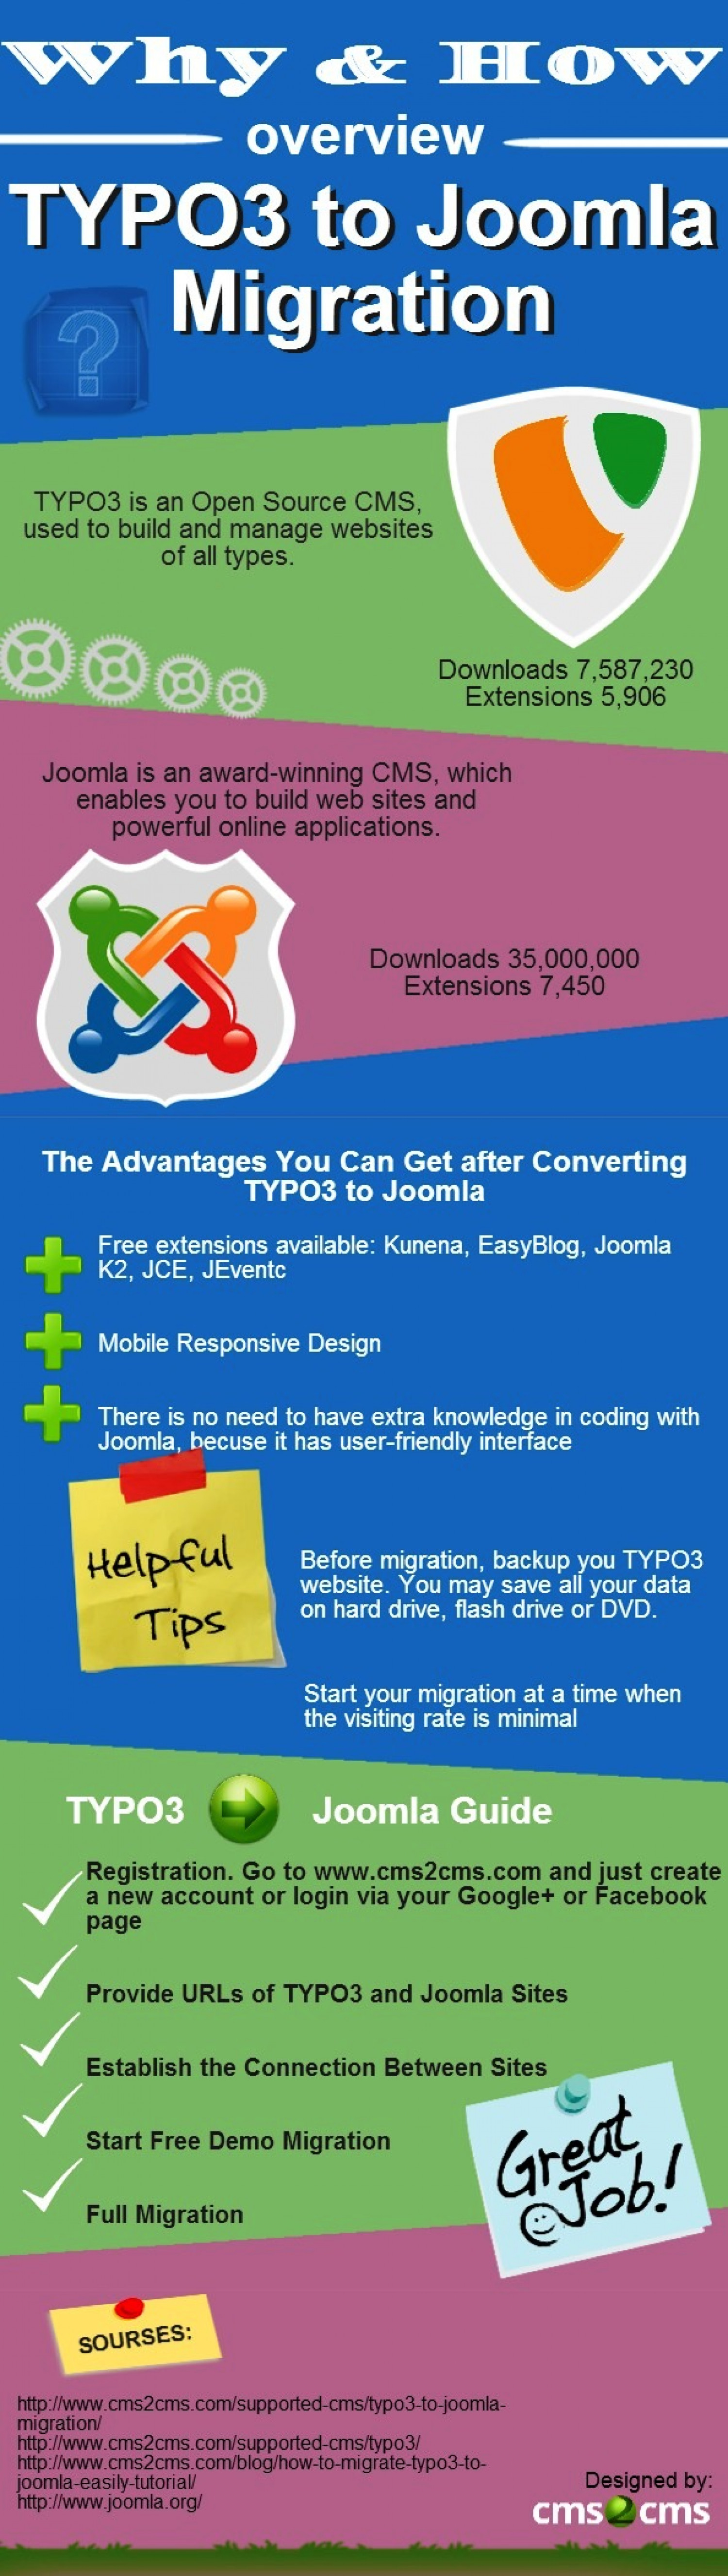 TYPO3 to Joomla Migration: It has Never been Easier Infographic